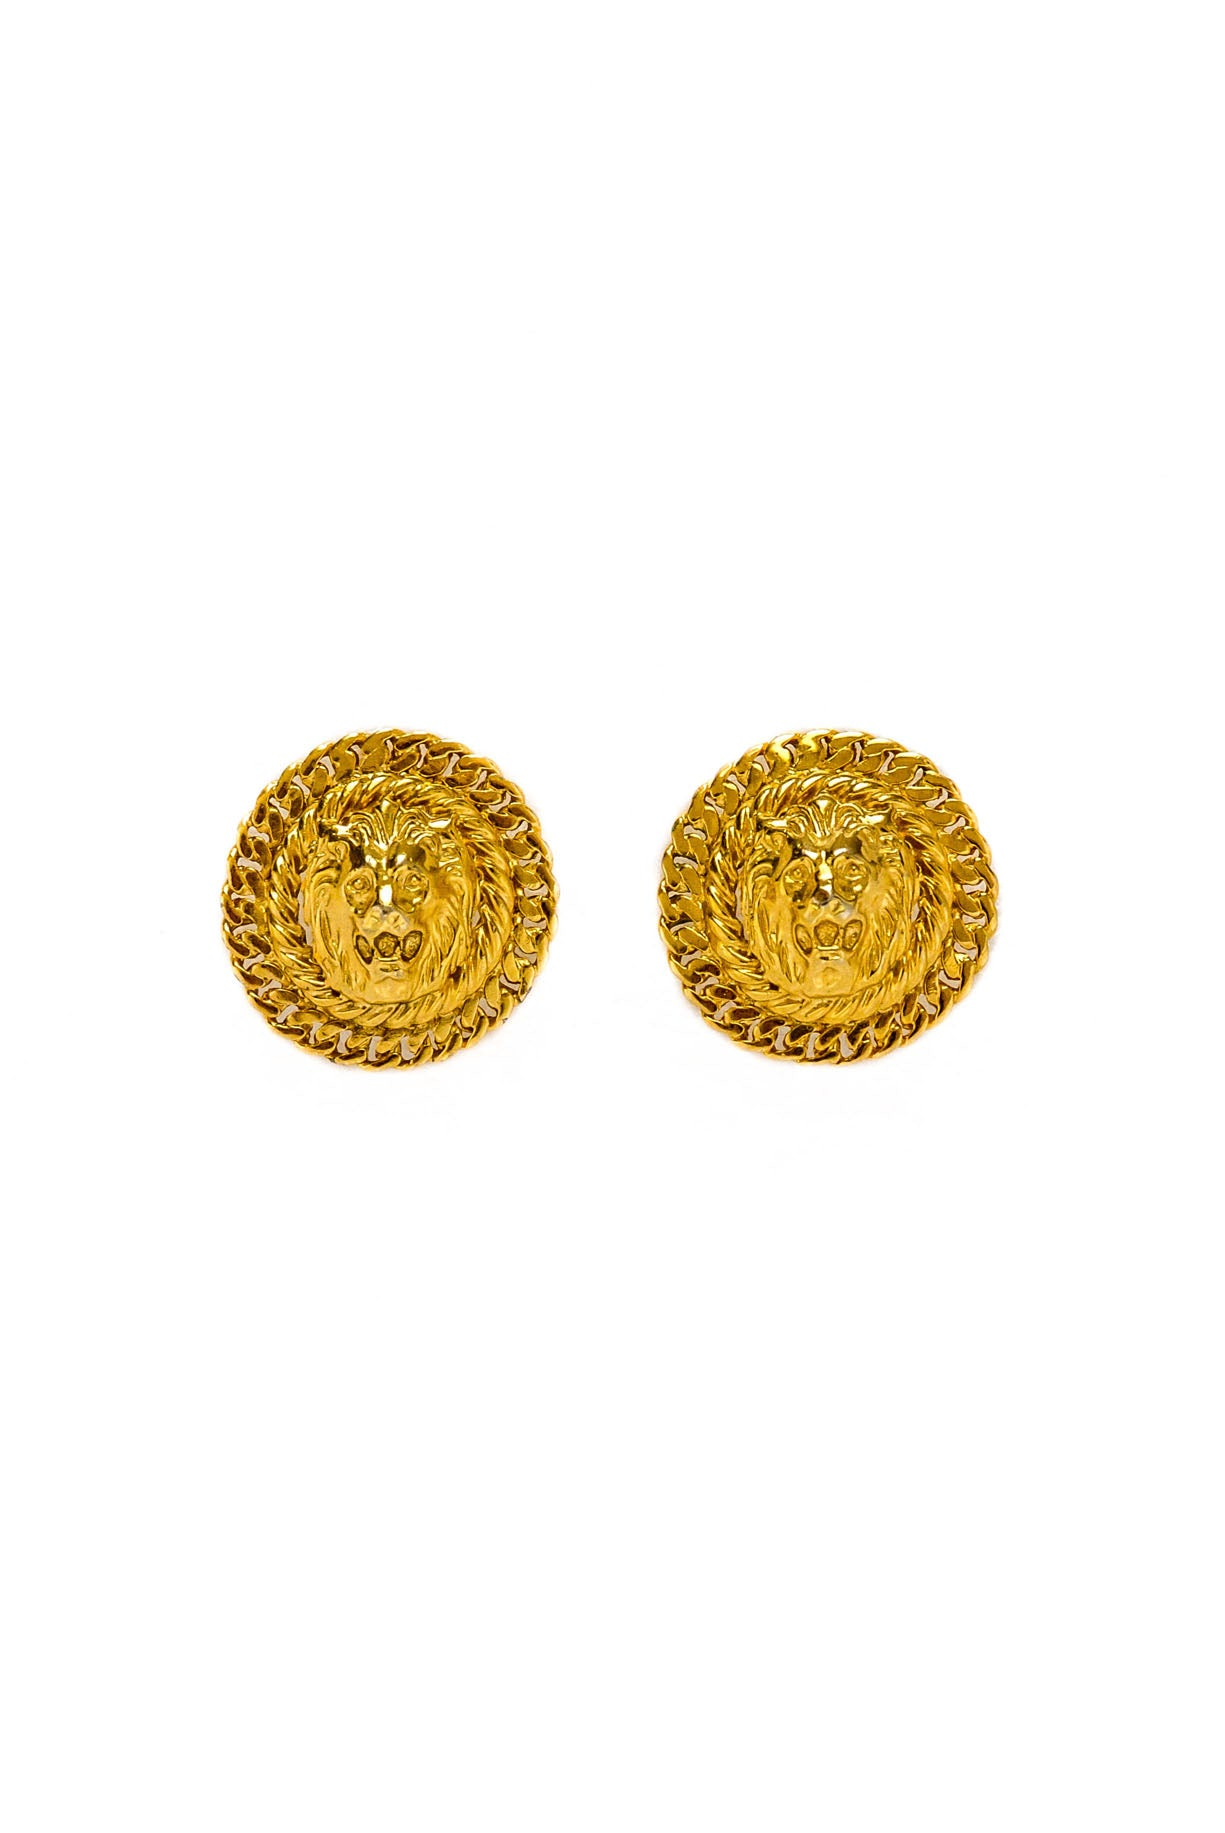 Vintage Lion Head Coin Earrings from Sweet & Spark.